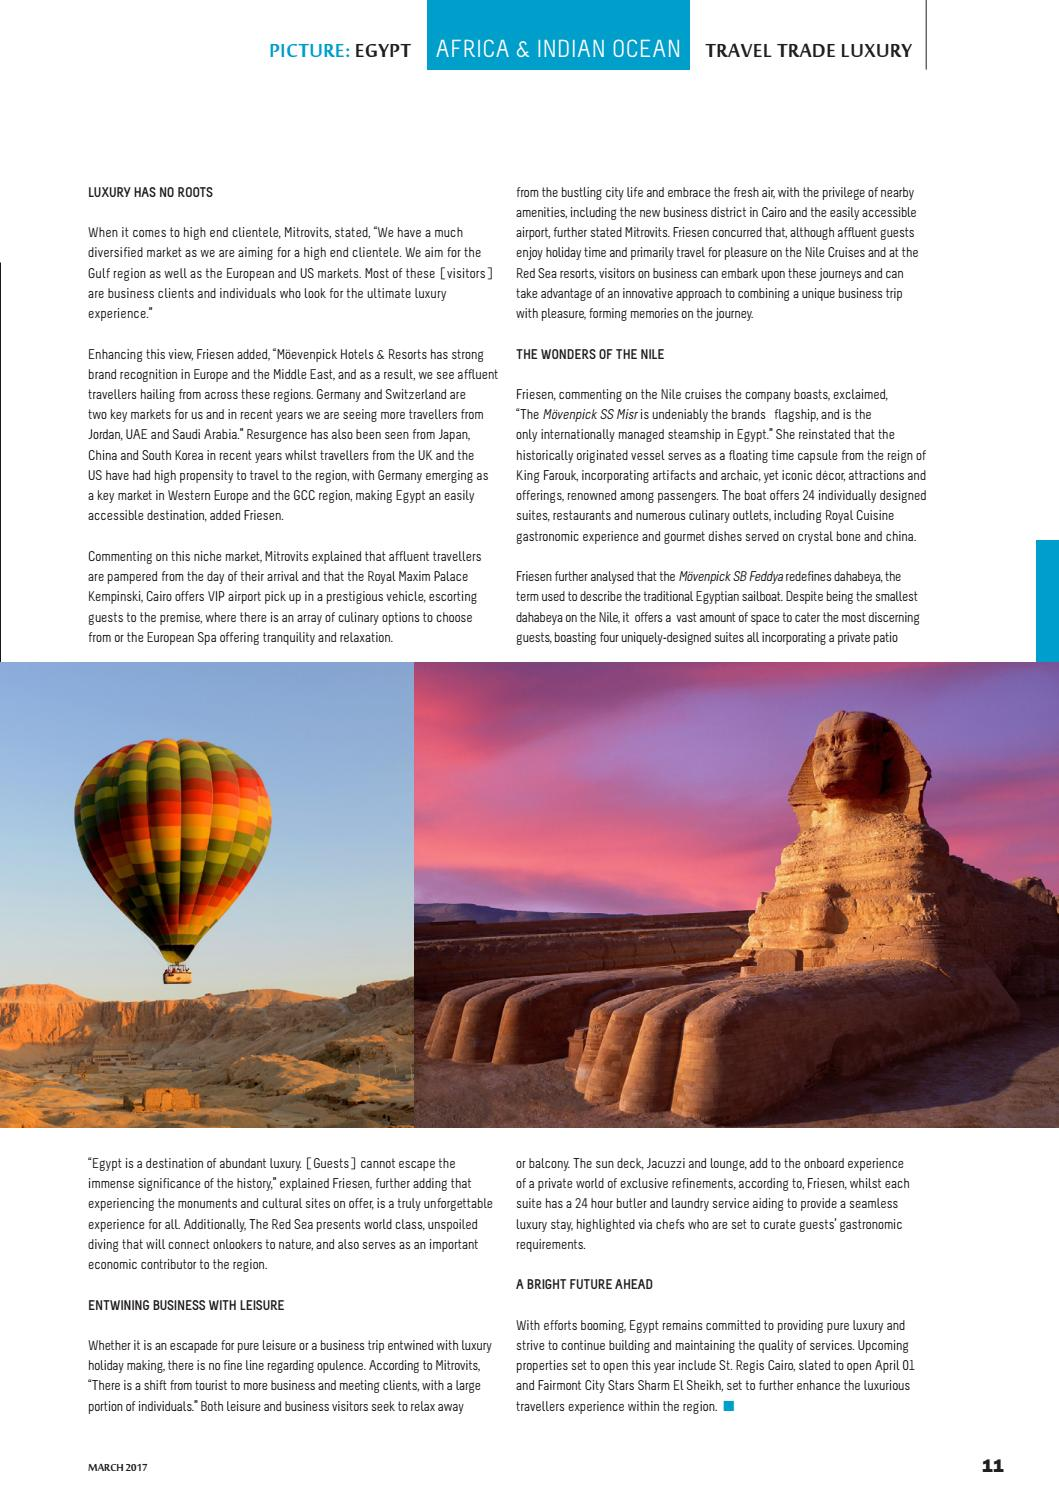 Travel Trade Luxury, March 2017, Issue 13 by Travel Trade